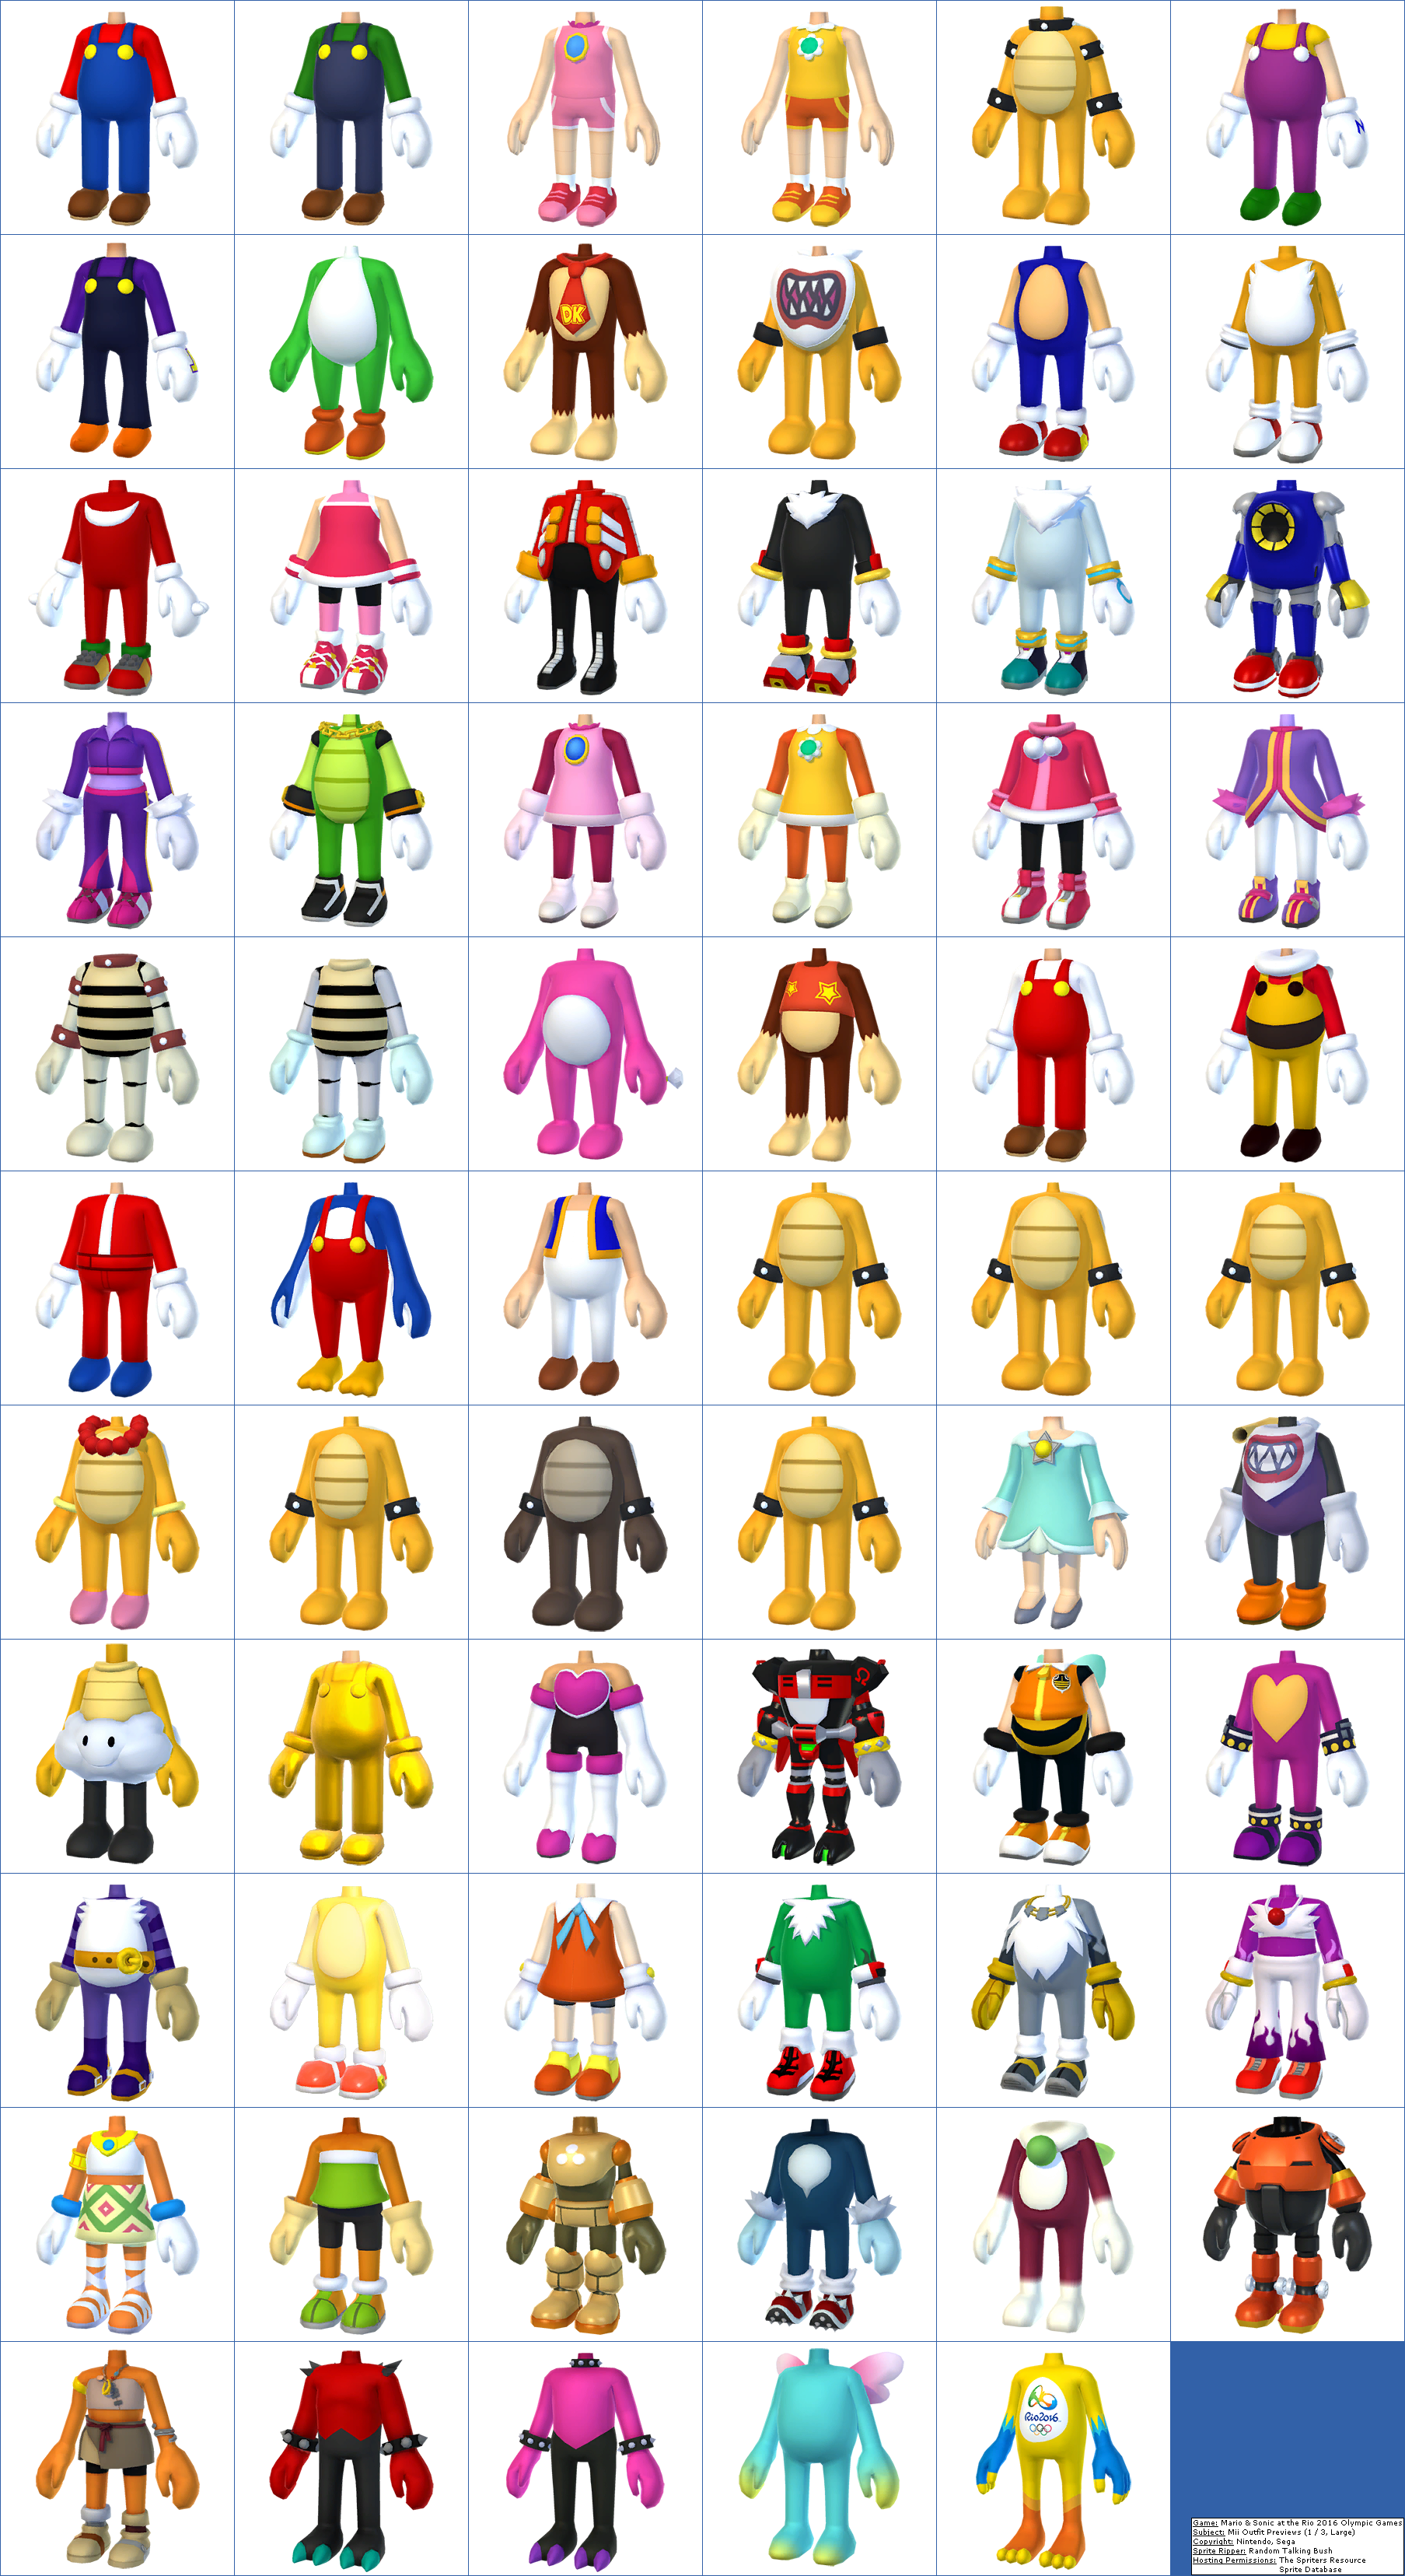 Mii Outfit Previews (1 / 3, Large)